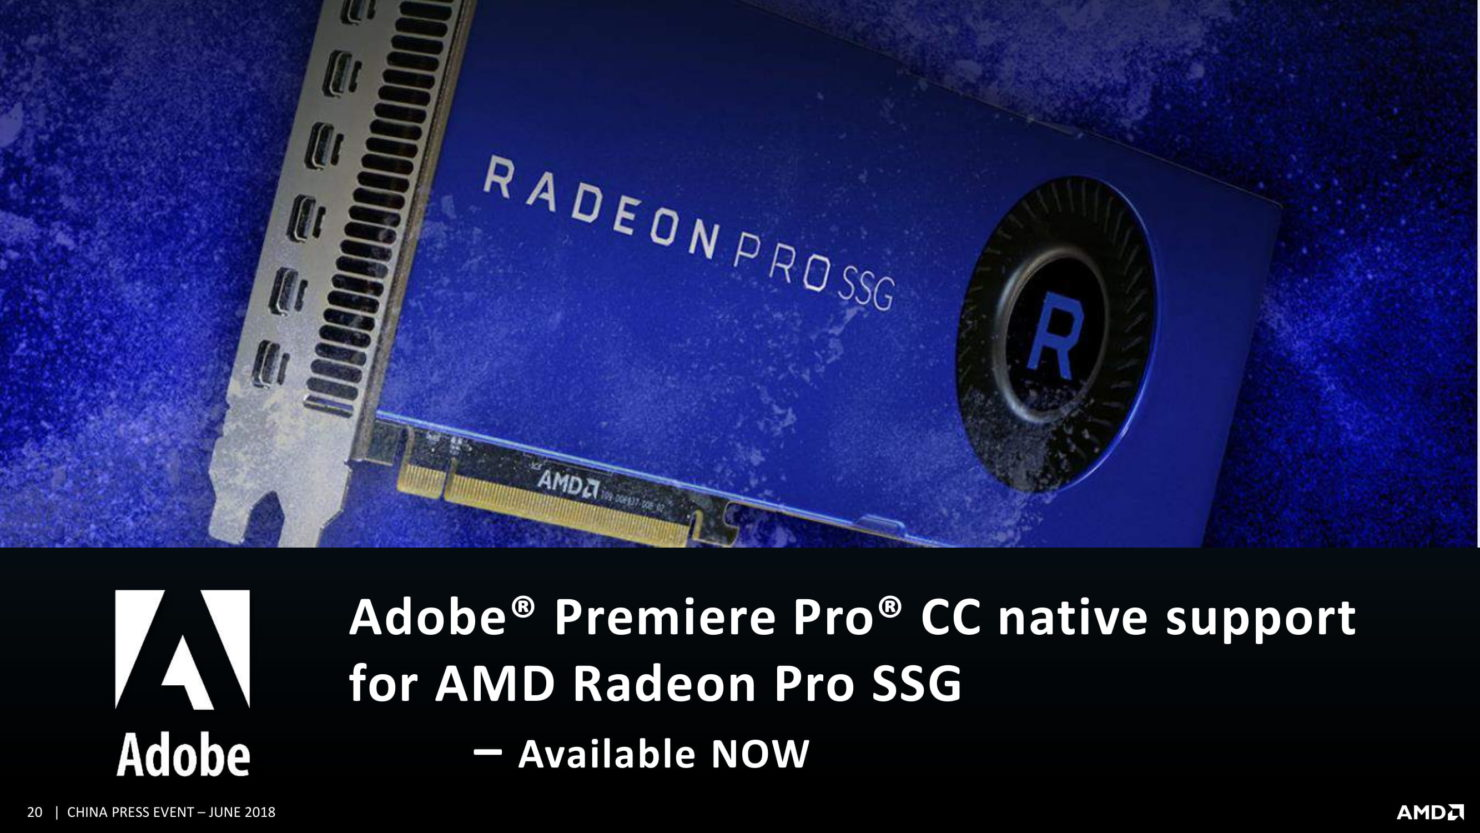 AMD Radeon Pro V340 quietly launched with dual-Vega 10 GPU